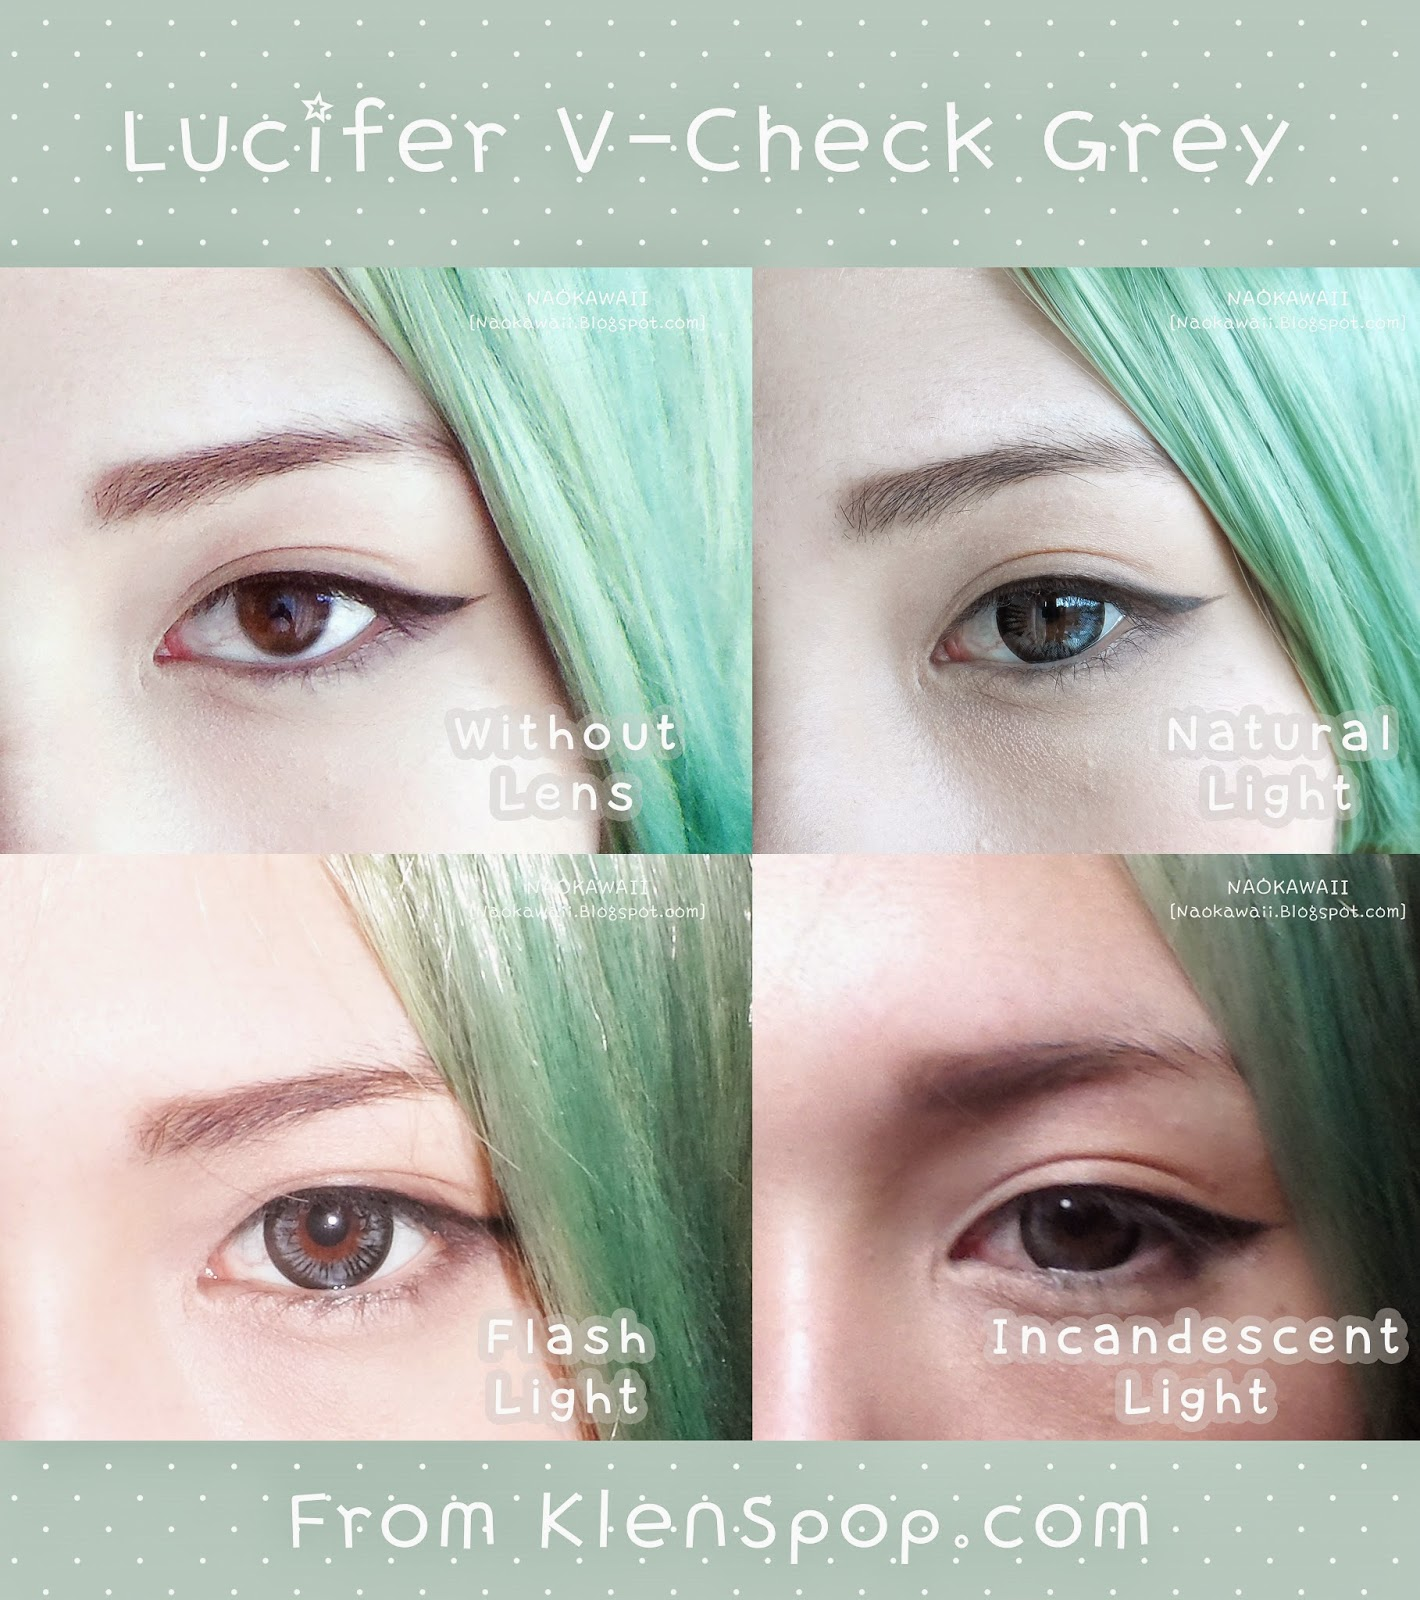 Naokawaii : EOS Lucifer V-Check Grey Circle Lenses Review